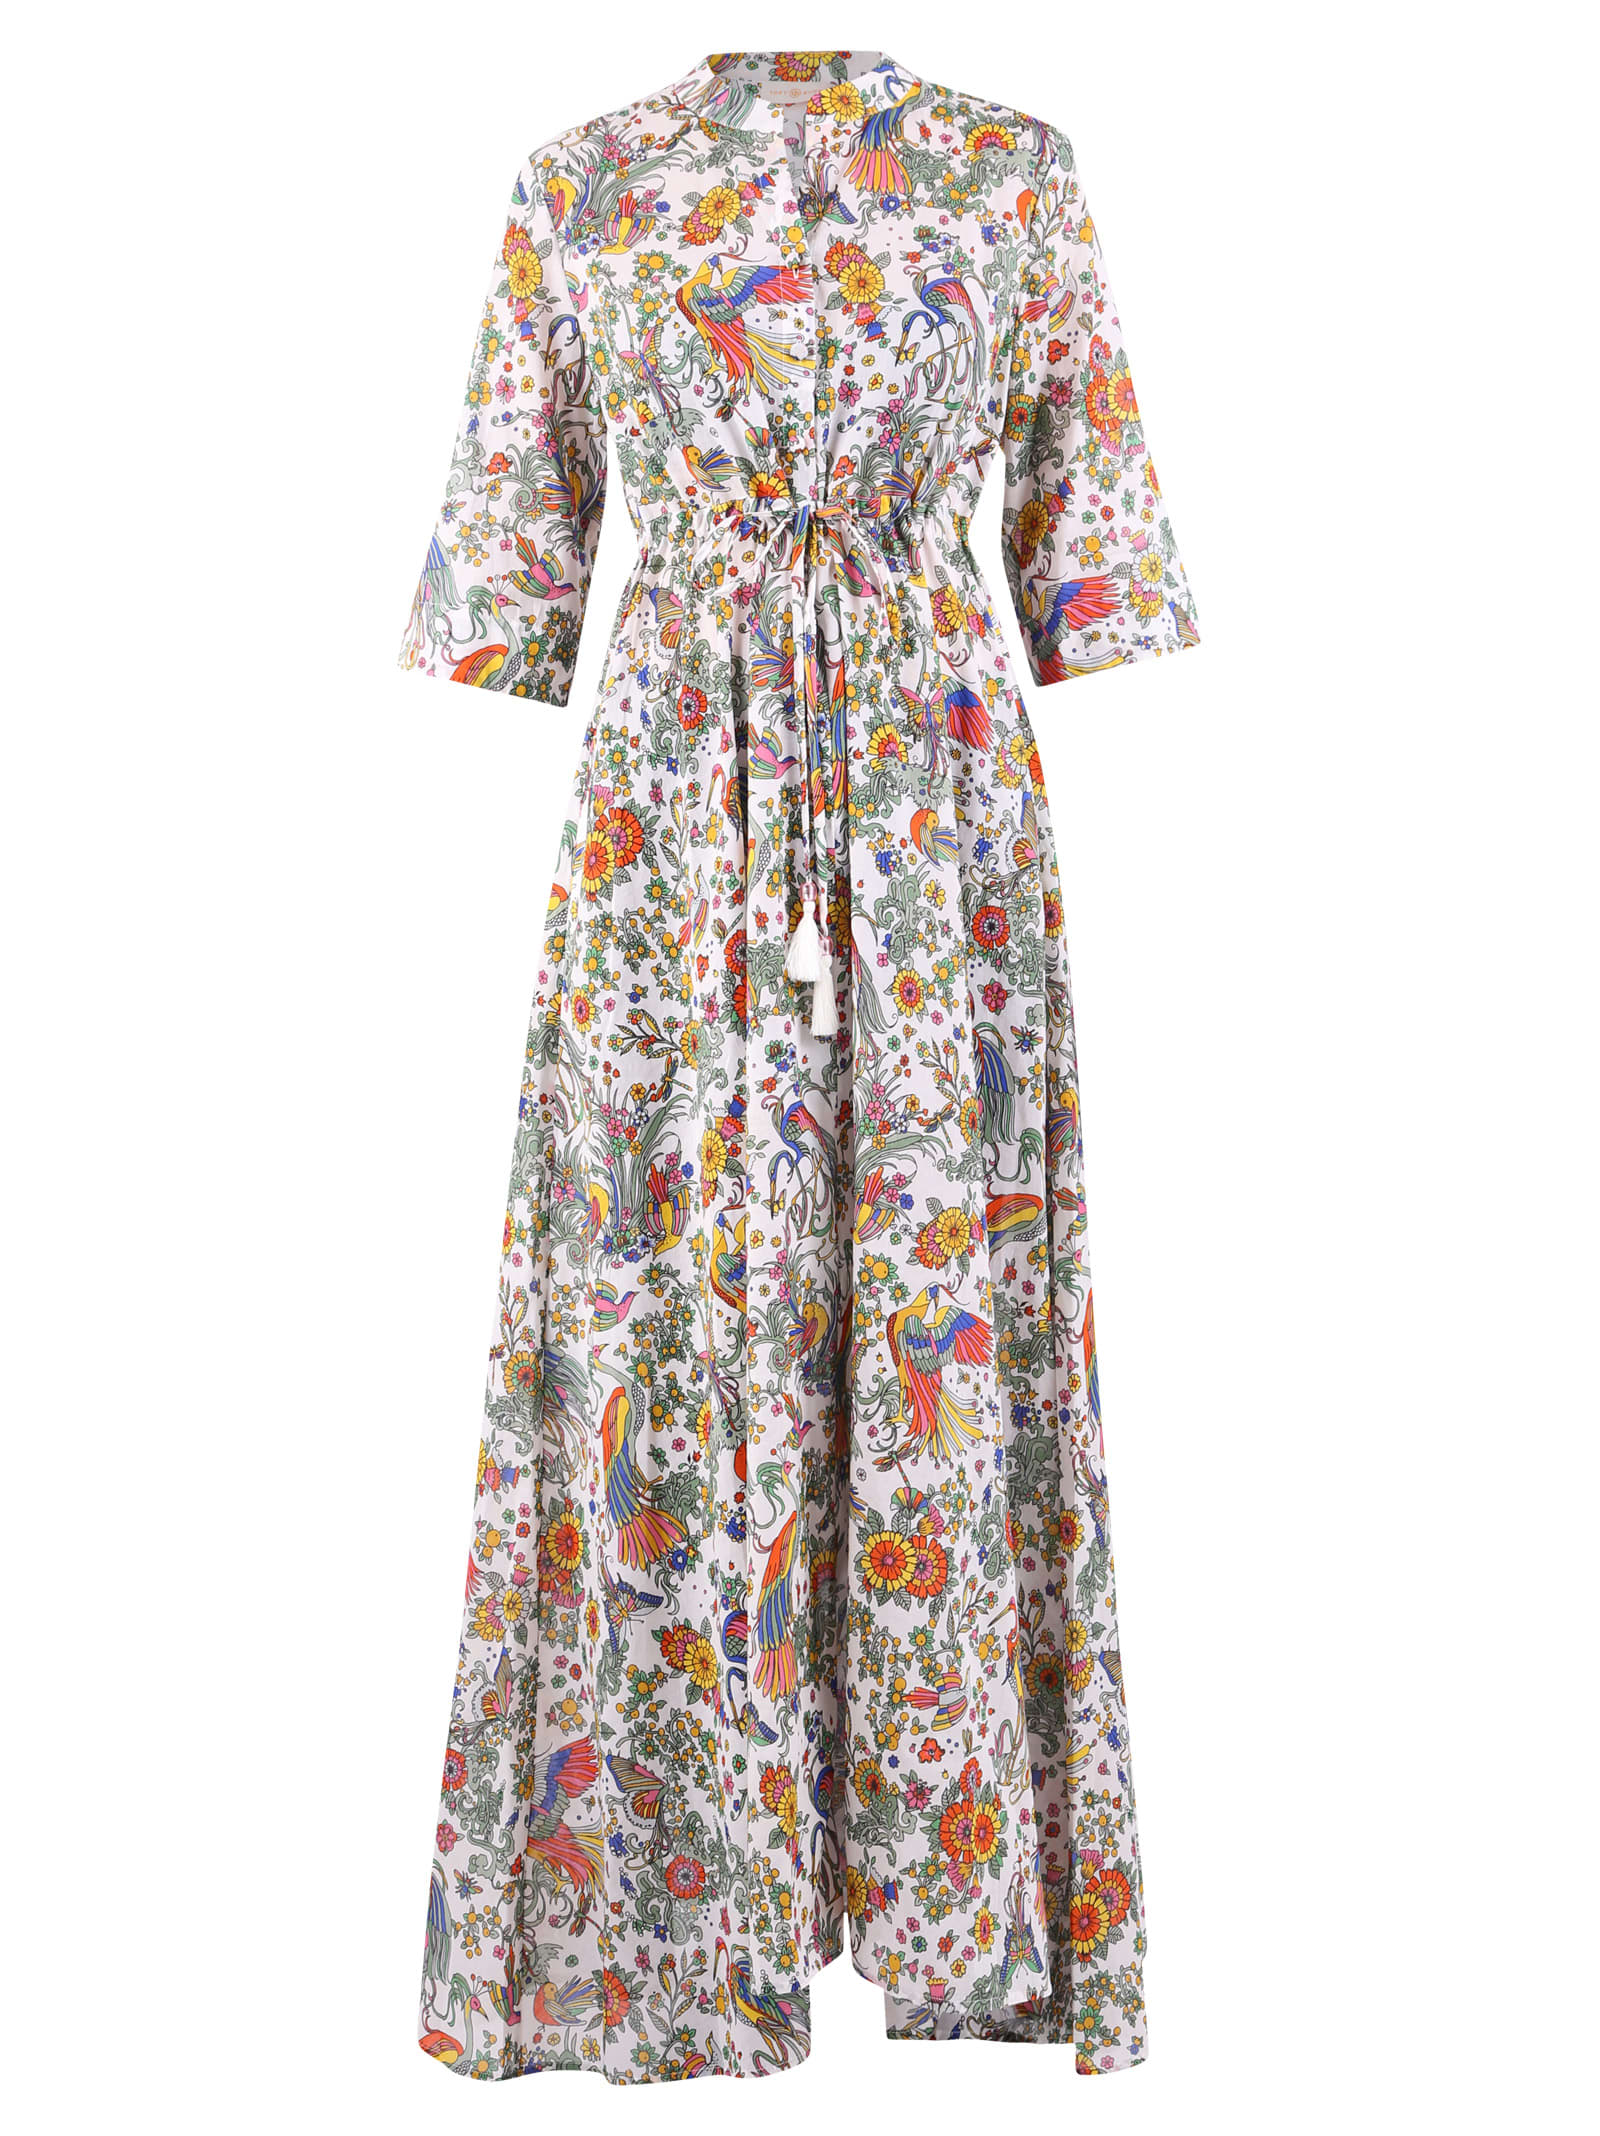 Buy Tory Burch Flowers Pattern Dress online, shop Tory Burch with free shipping